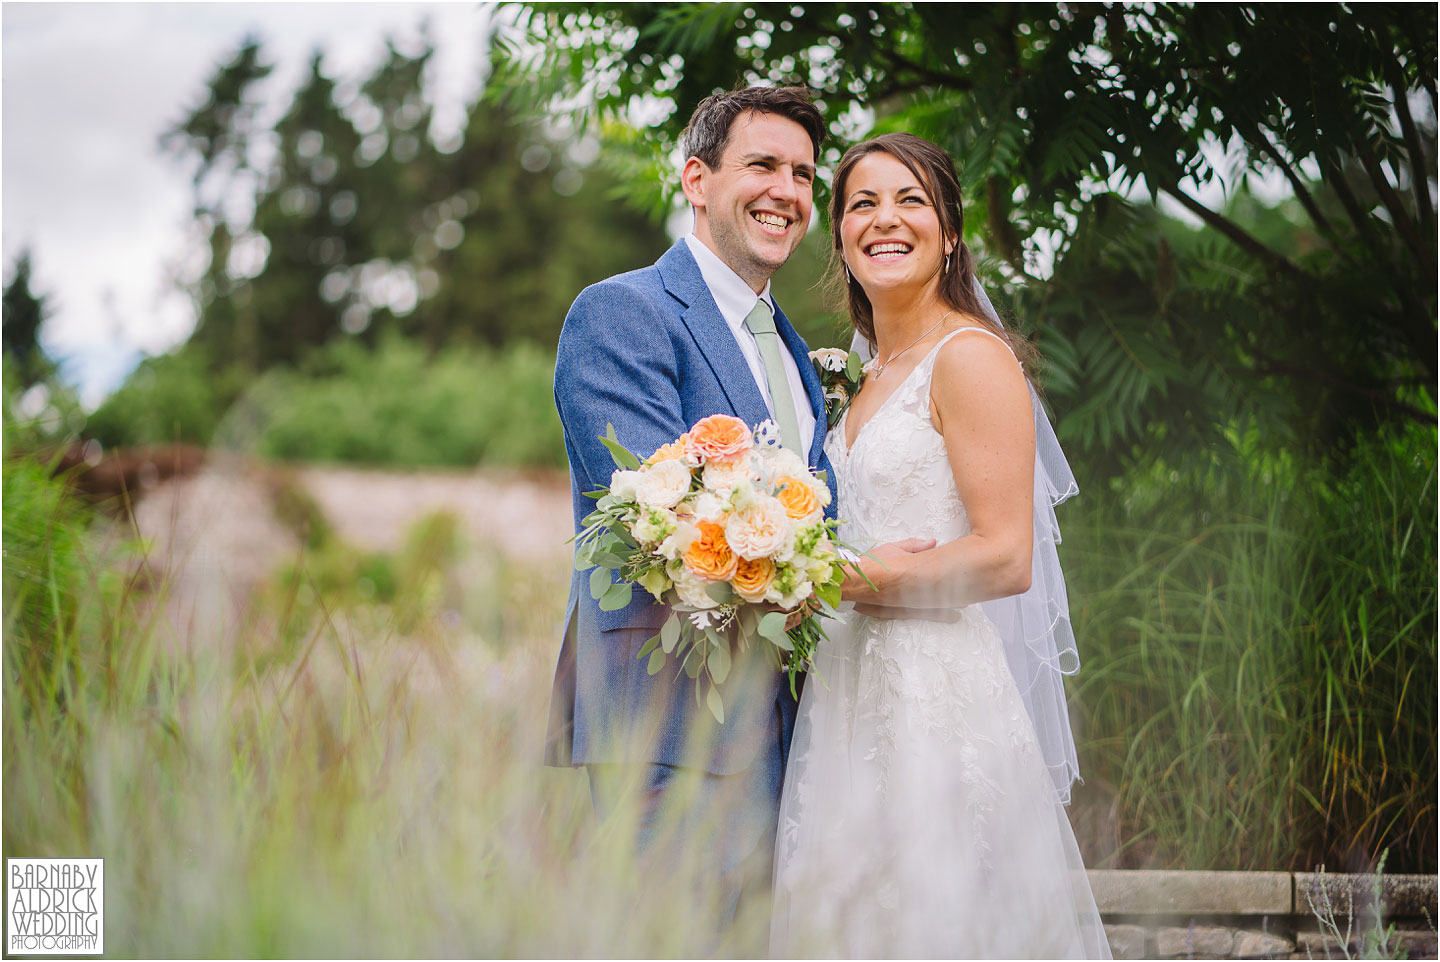 Bride and groom at the Fig House Walled Garden at Middleton Lodge, Fig House Walled Garden Middleton Lodge Wedding Photos, Fig House Middleton Lodge Richmond, Middleton Lodge wedding photographer, Middleton Lodge Wedding Photography, Yorkshire Wedding Photographer Barnaby Aldrick